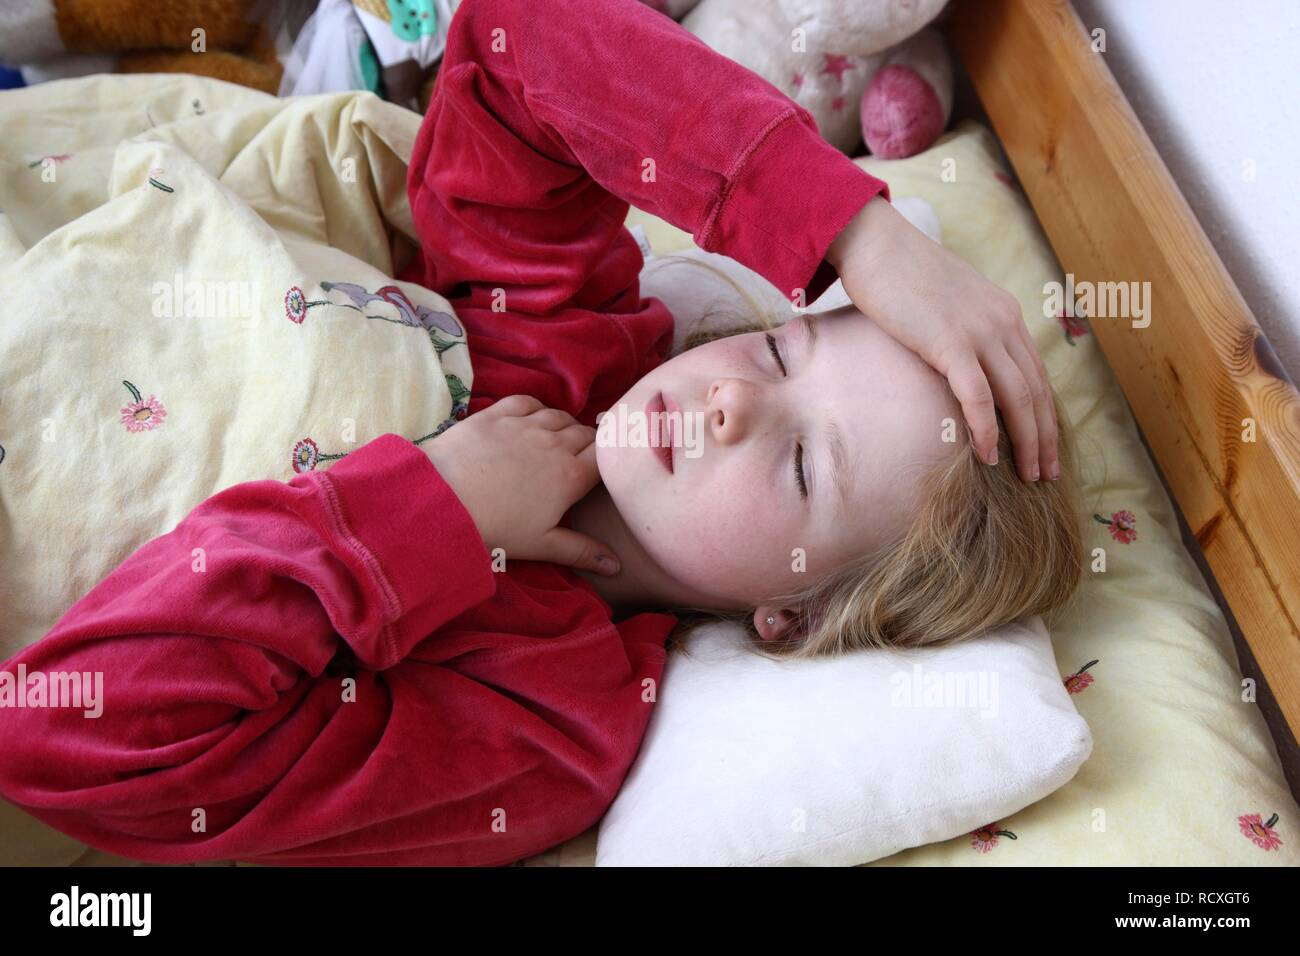 Girl, 10 years old, is ill in bed with a cold, flu, fever - Stock Image